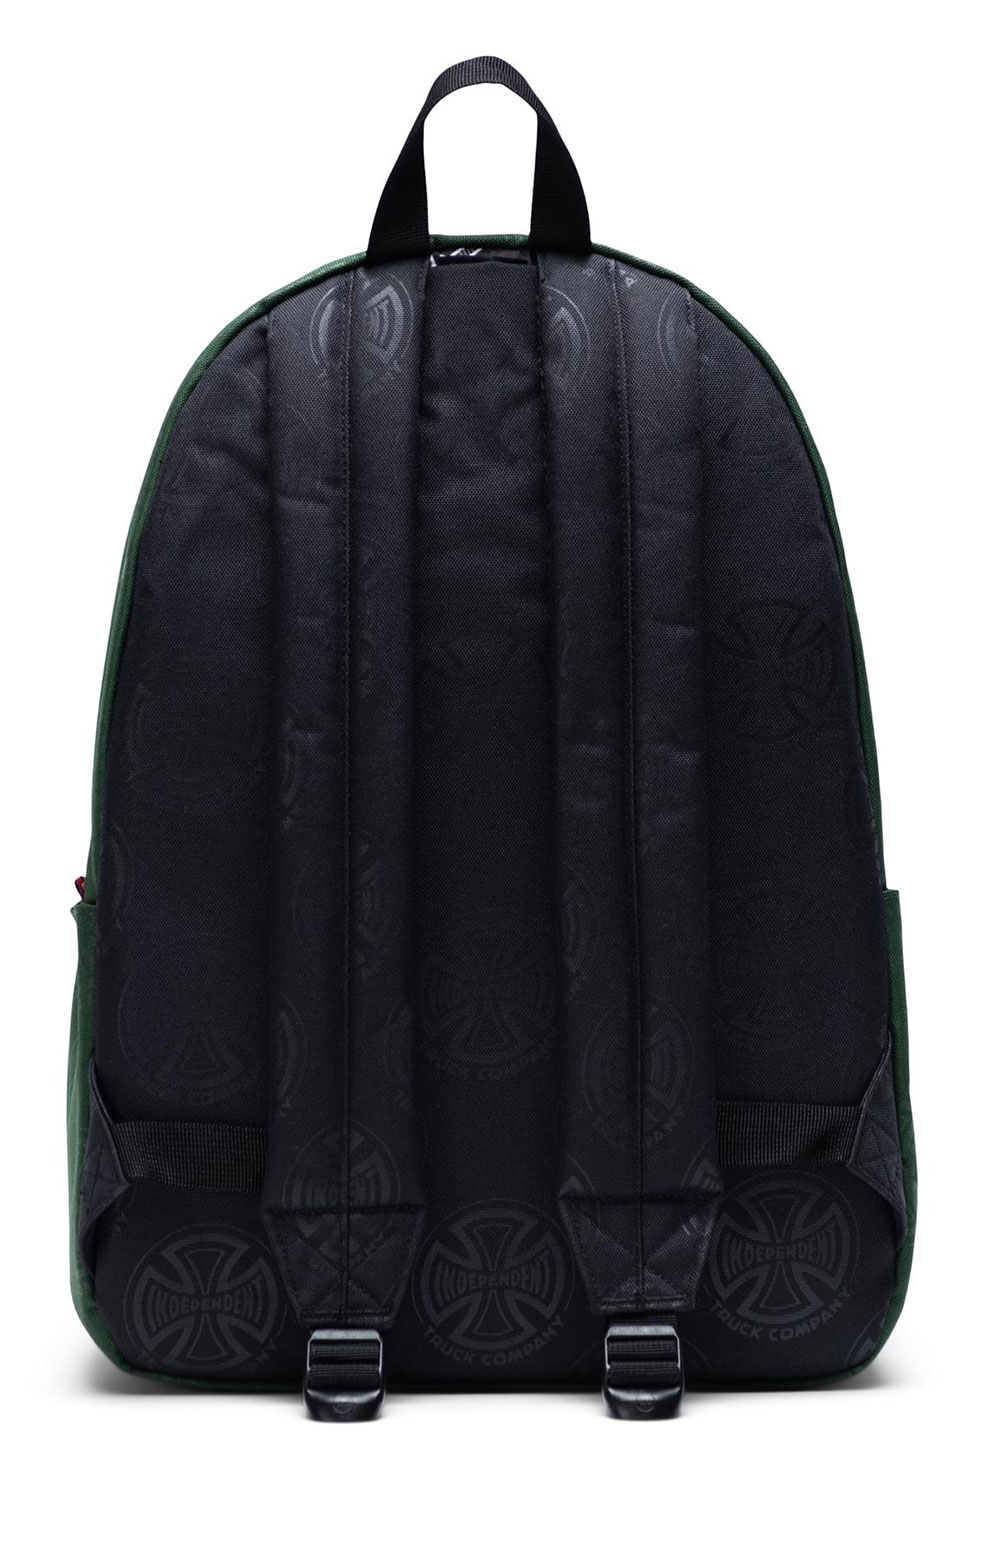 Classic XL Backpack - Independent Multi Greener Pastures  3